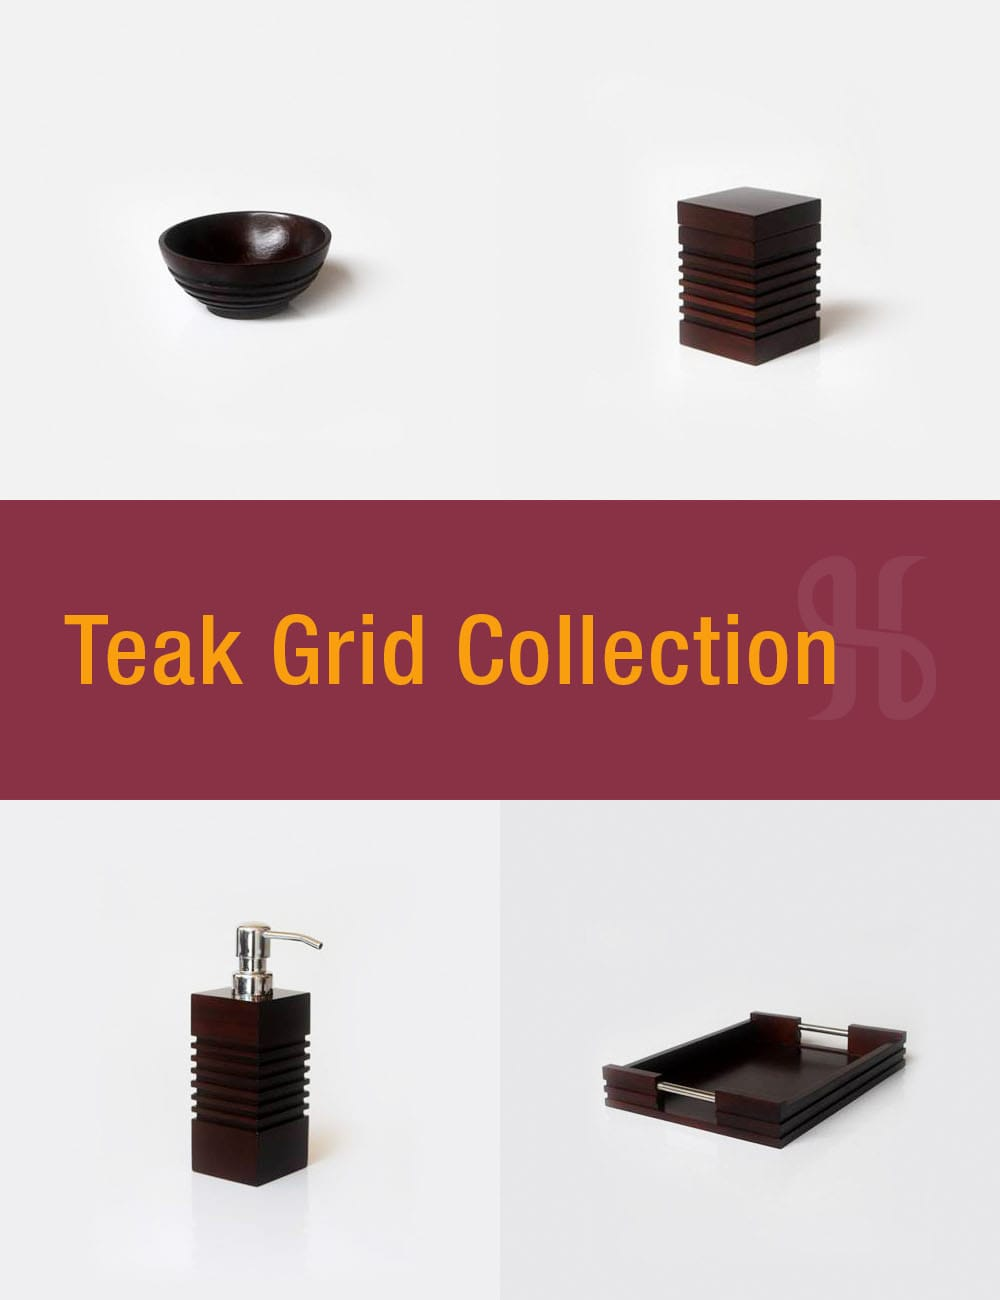 Teak Grid Collection